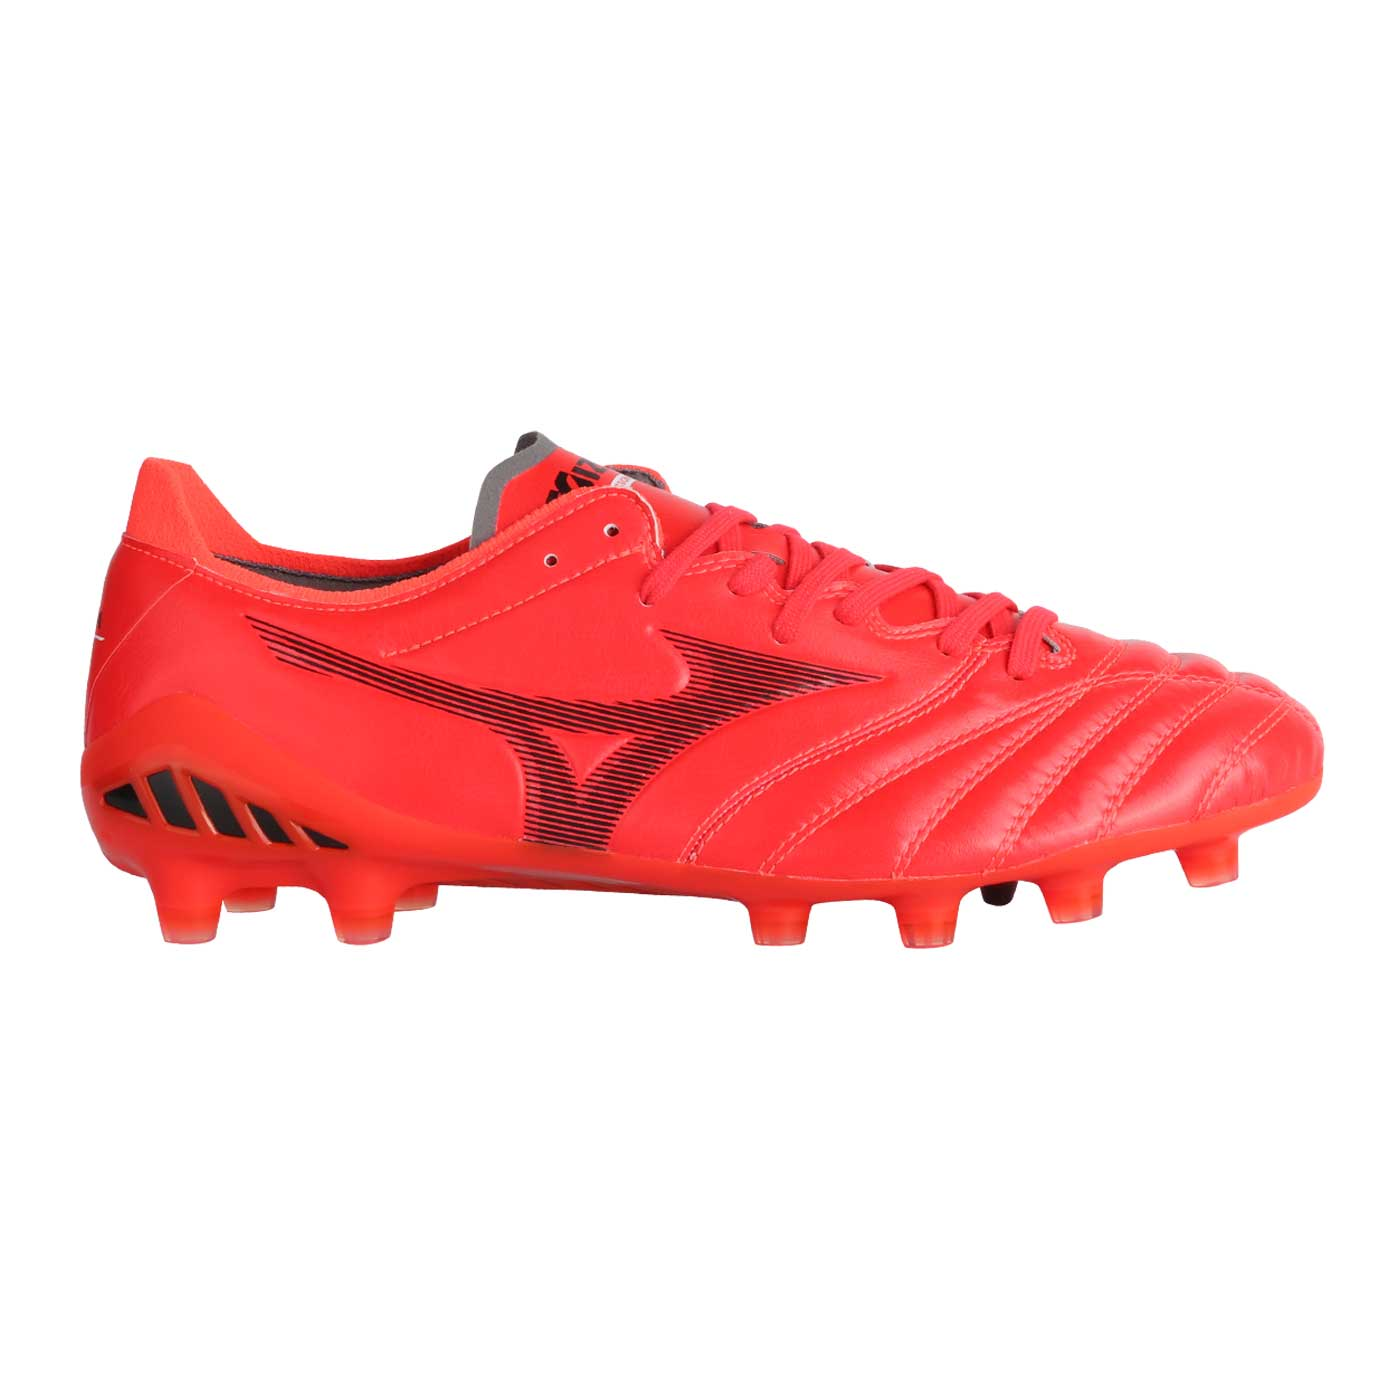 MORELIA NEO III ELITE-IGNITION RED/BLACK